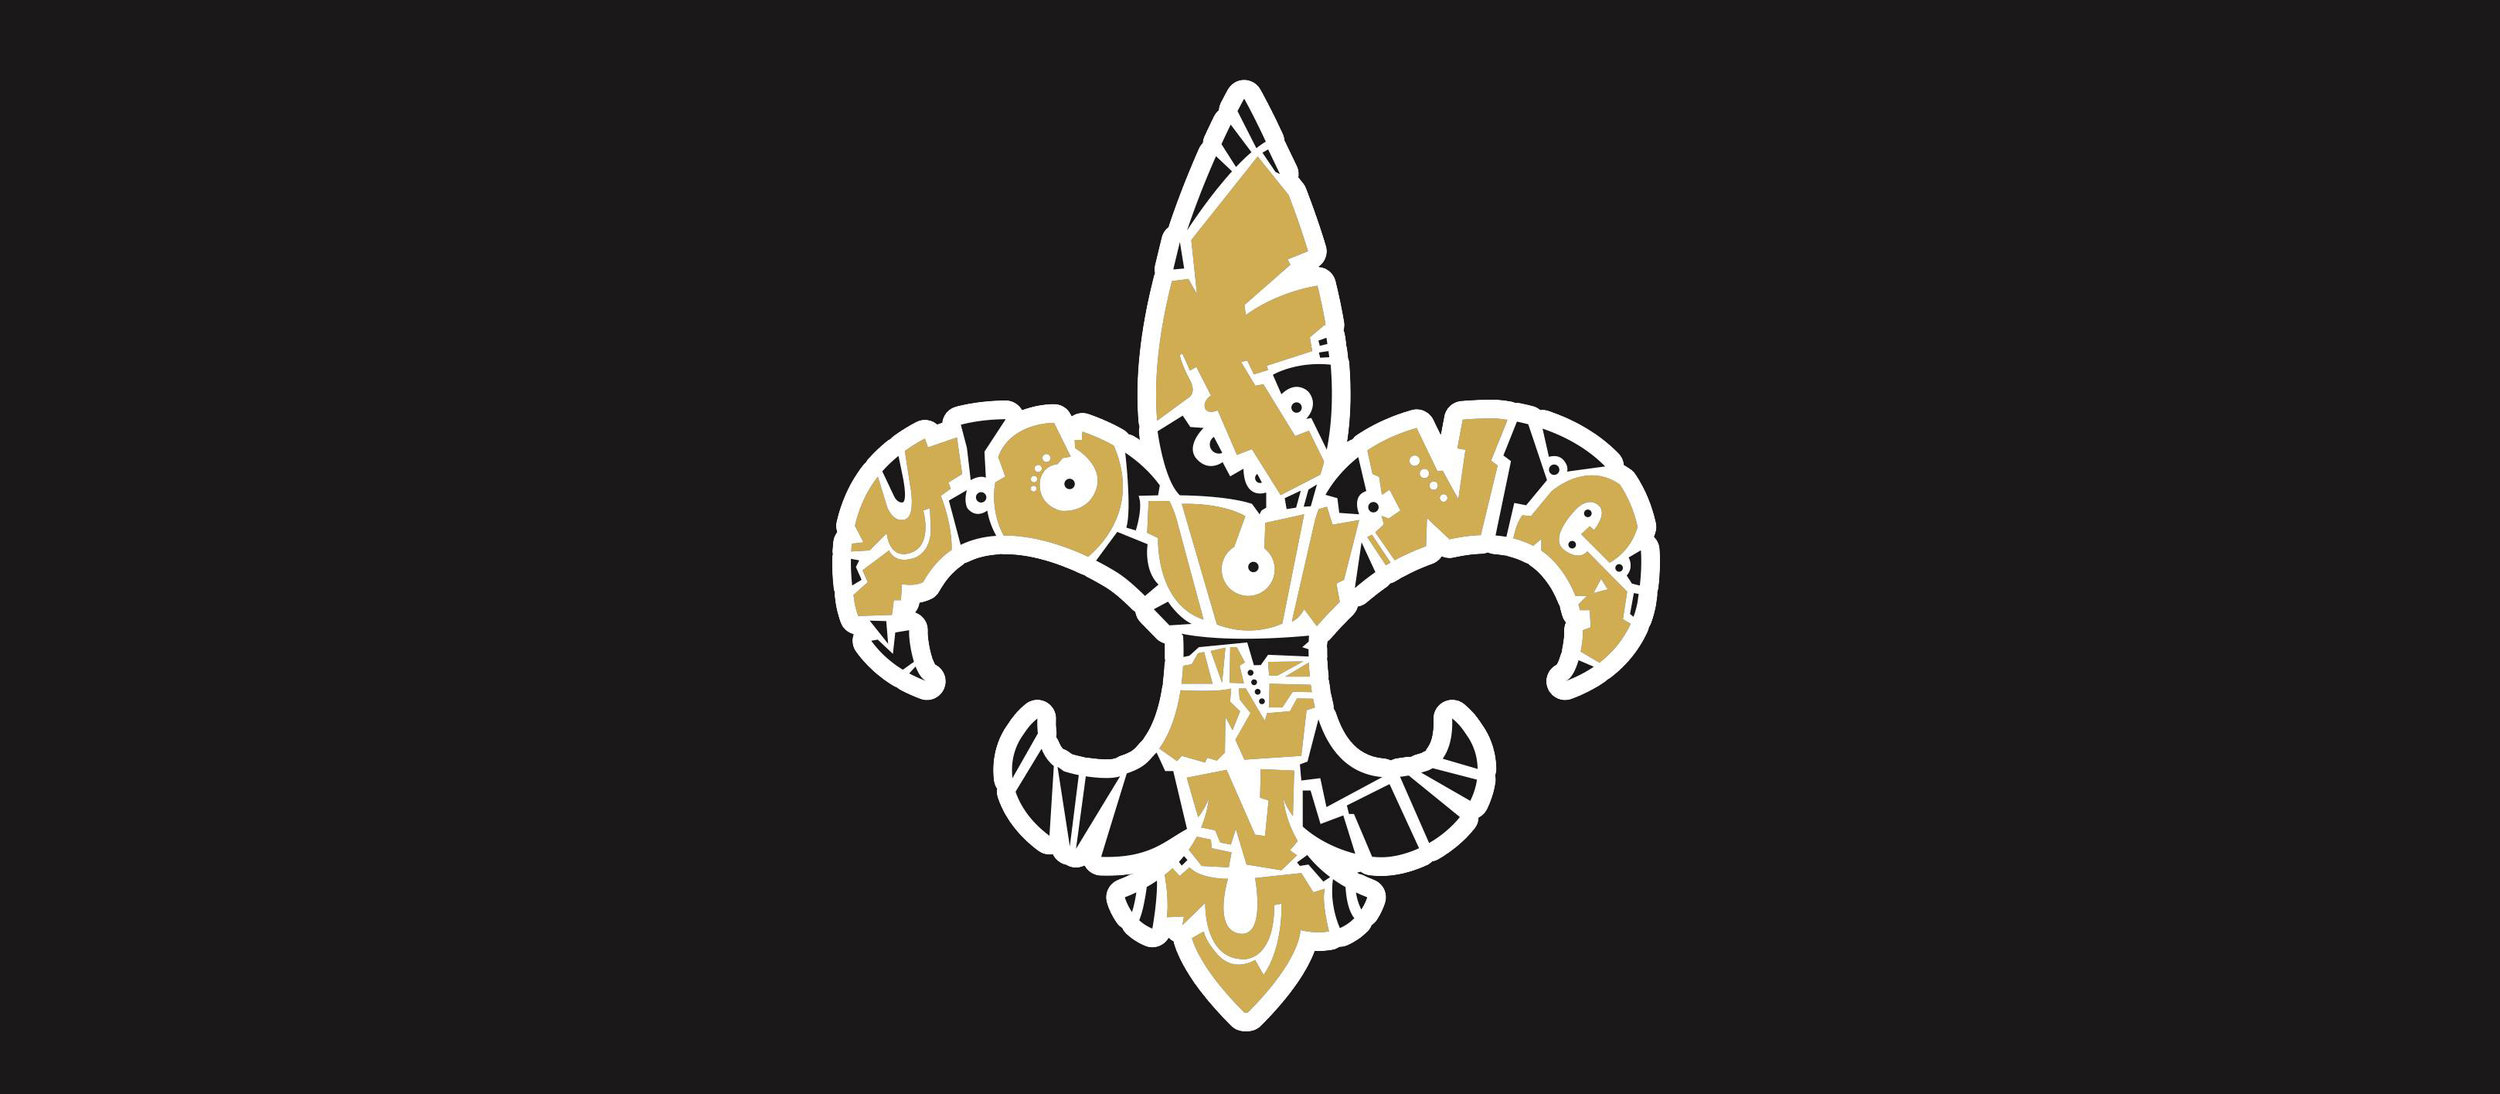 We Are Young Funny - We are Young Funny is a #NOLA based comedy troupe, founded by the late Jon Reaux.